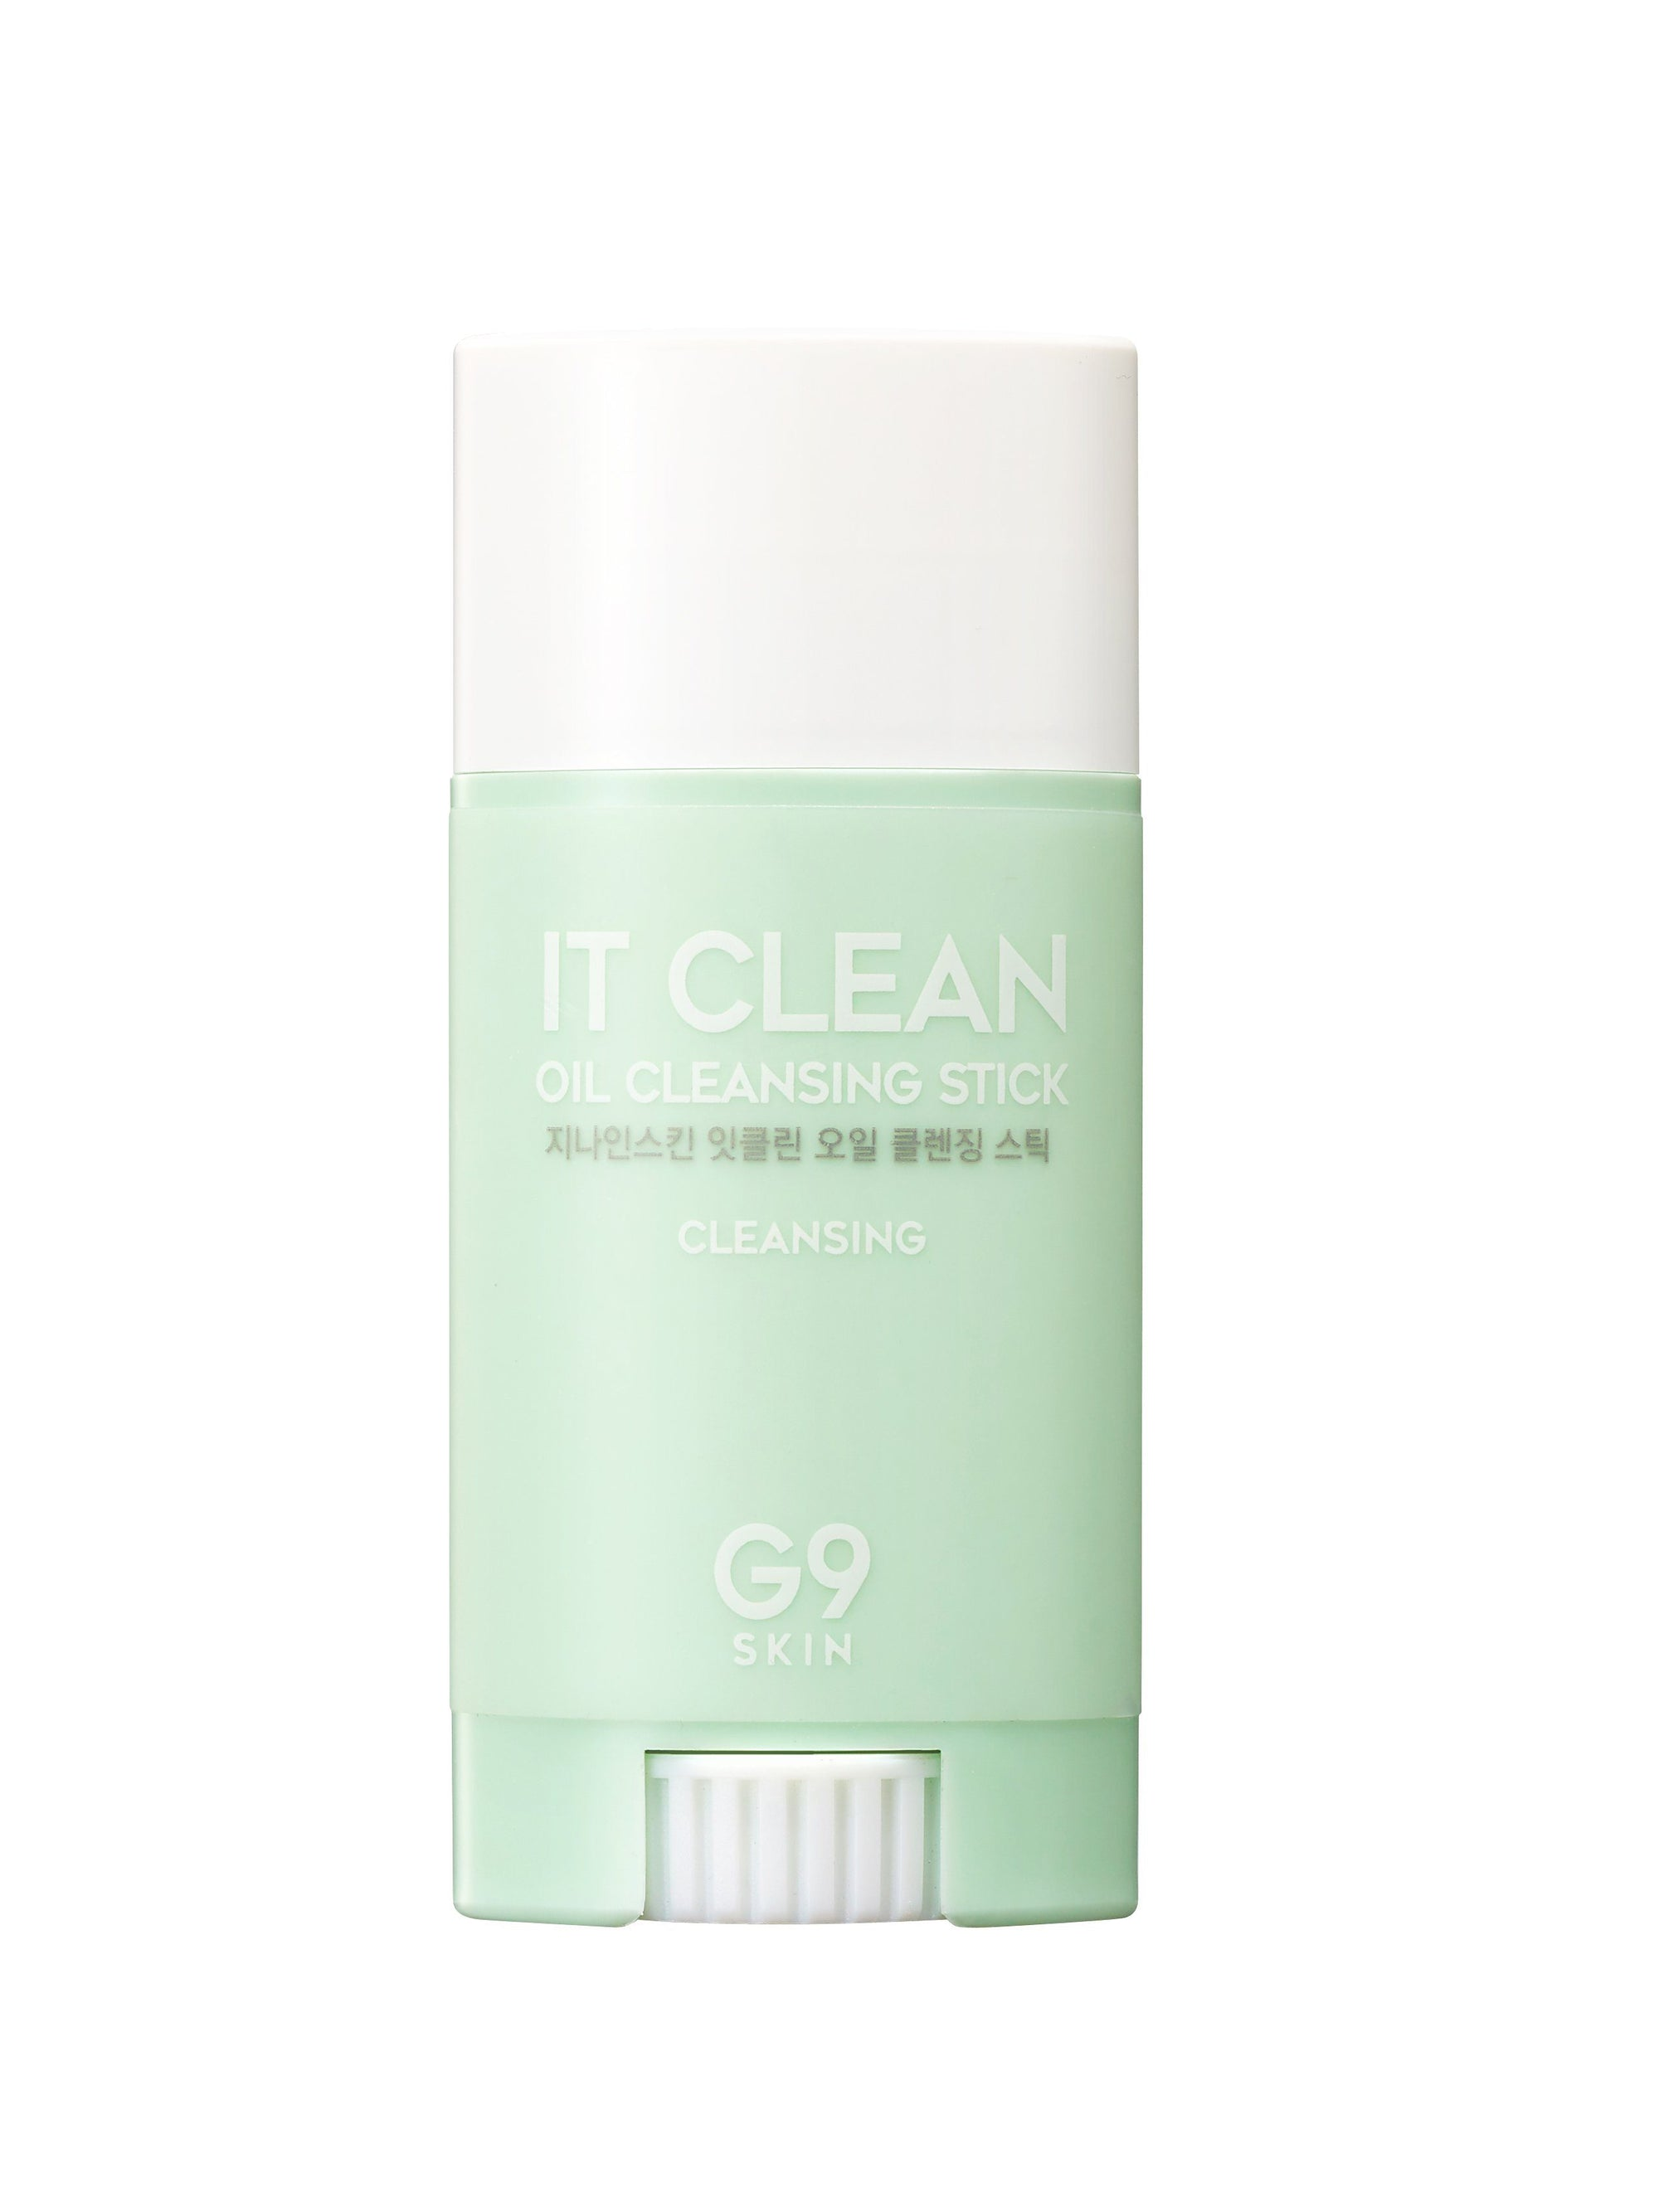 Health & Beauty > Personal Care > Cosmetics > Skin Care > Lotion & Moisturizer - It Clean Oil Cleansing Stick Olejek W Sztyfcie 35 G